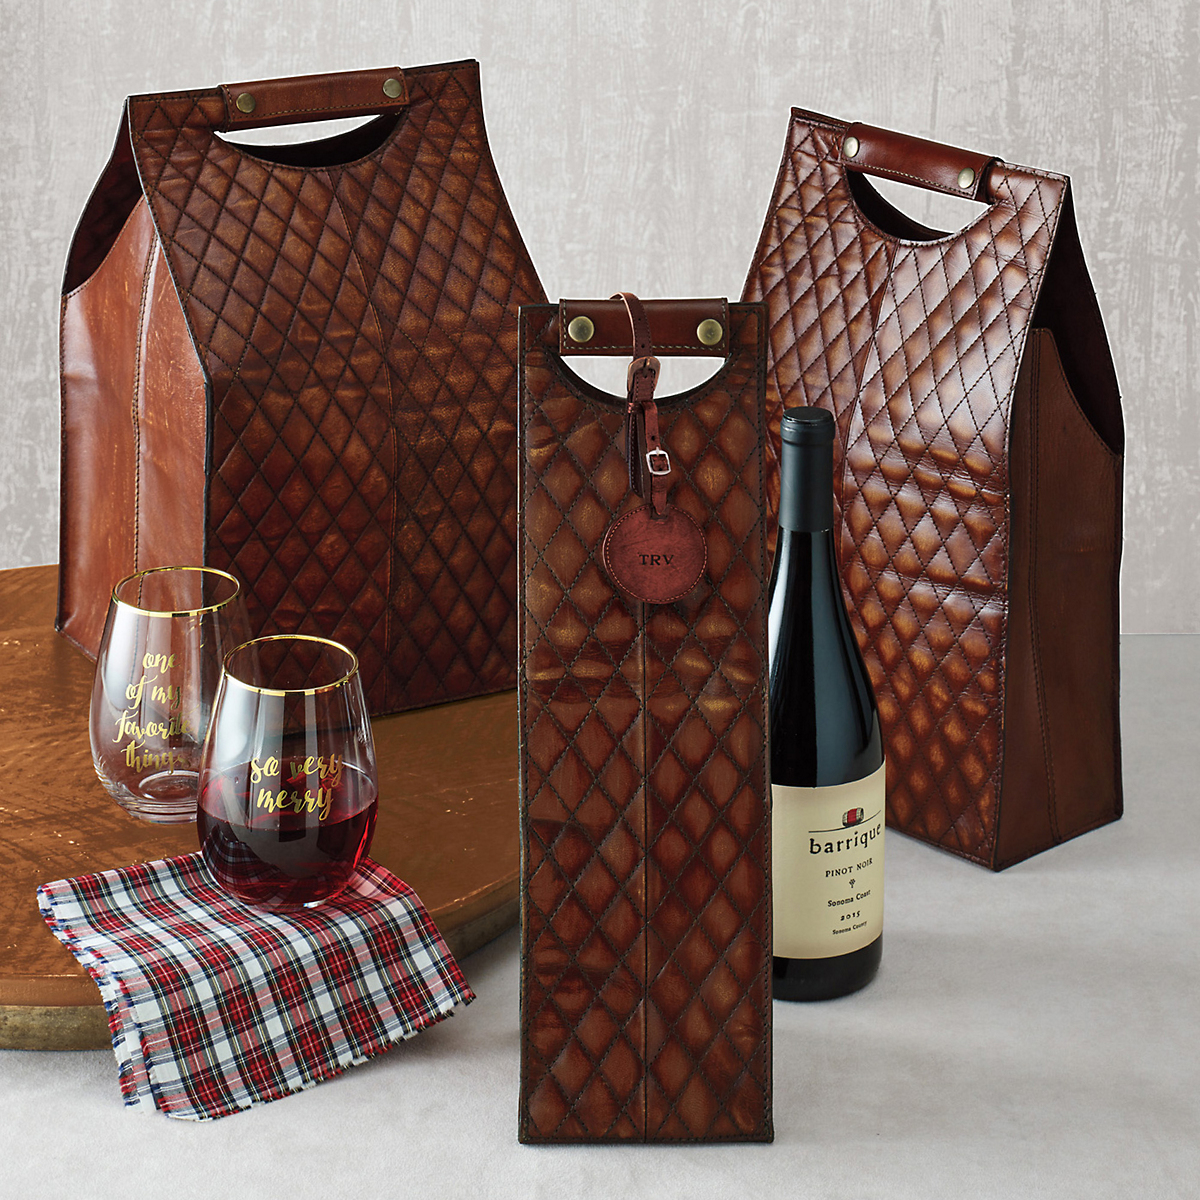 Chateau Quilted Wine Bottle Carriers